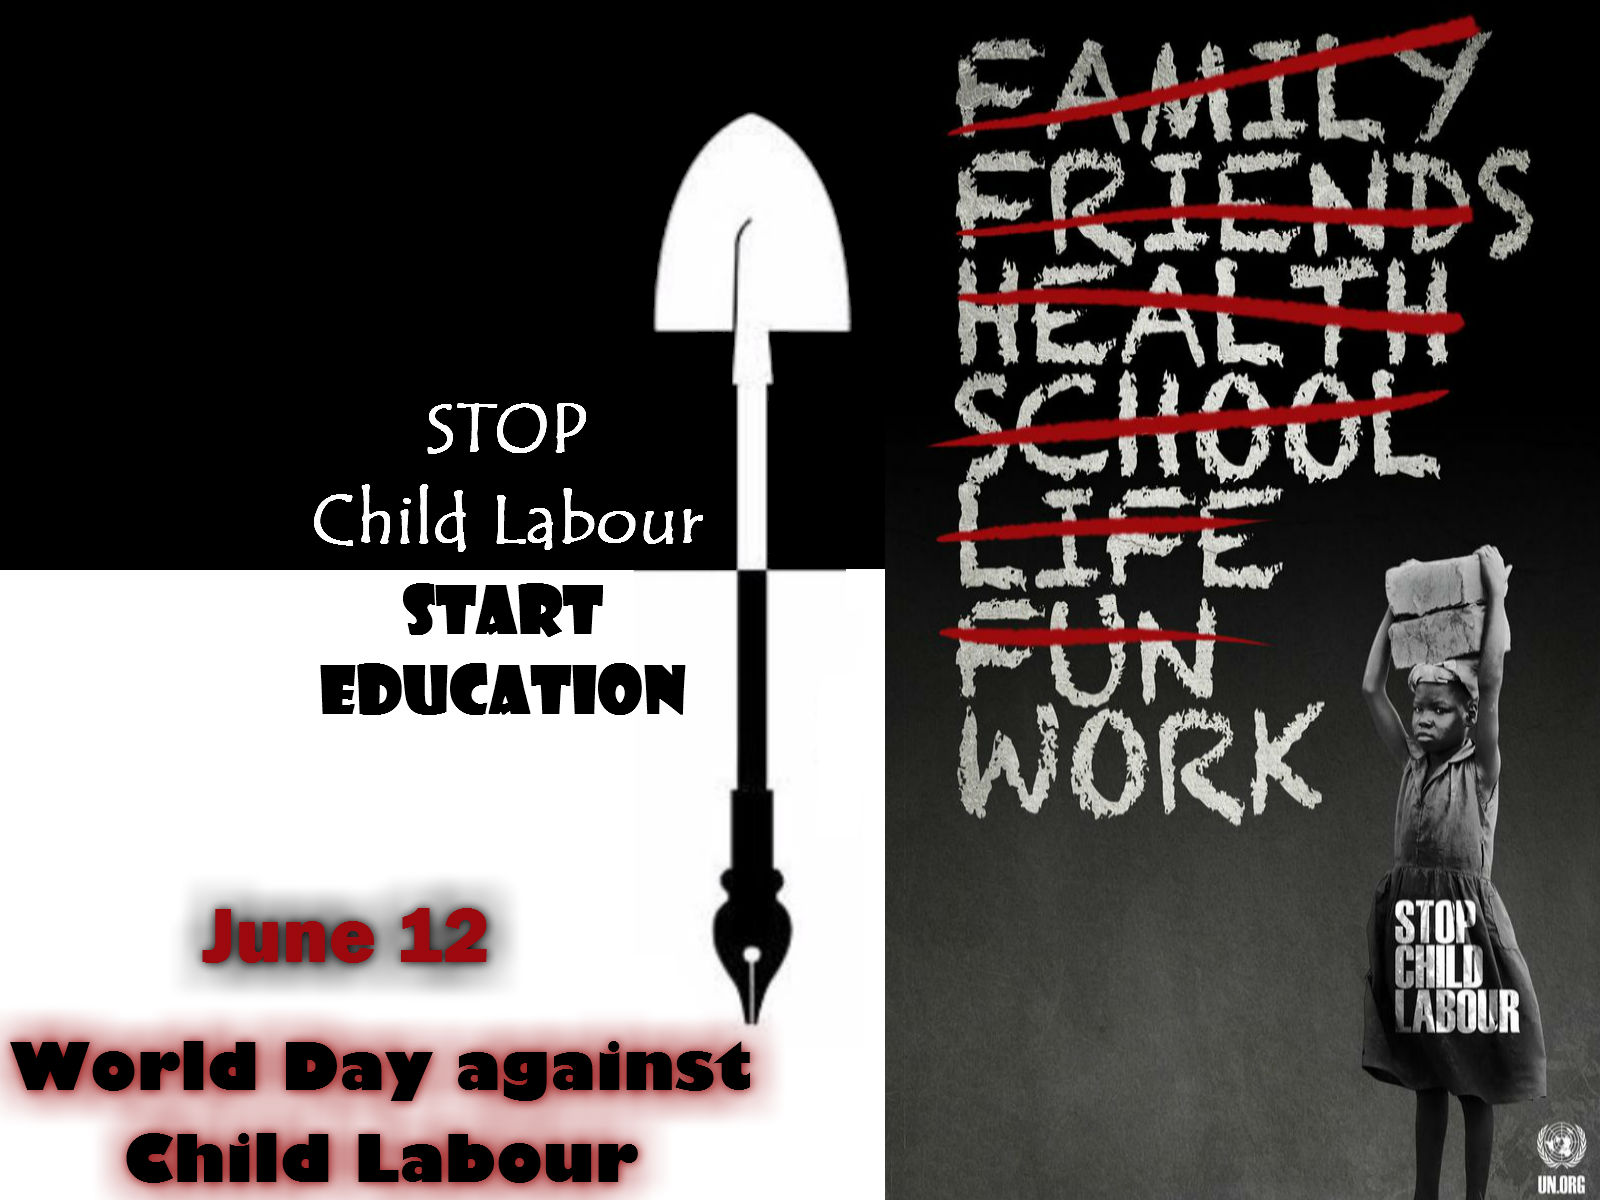 World day Against Child Labour – June 12